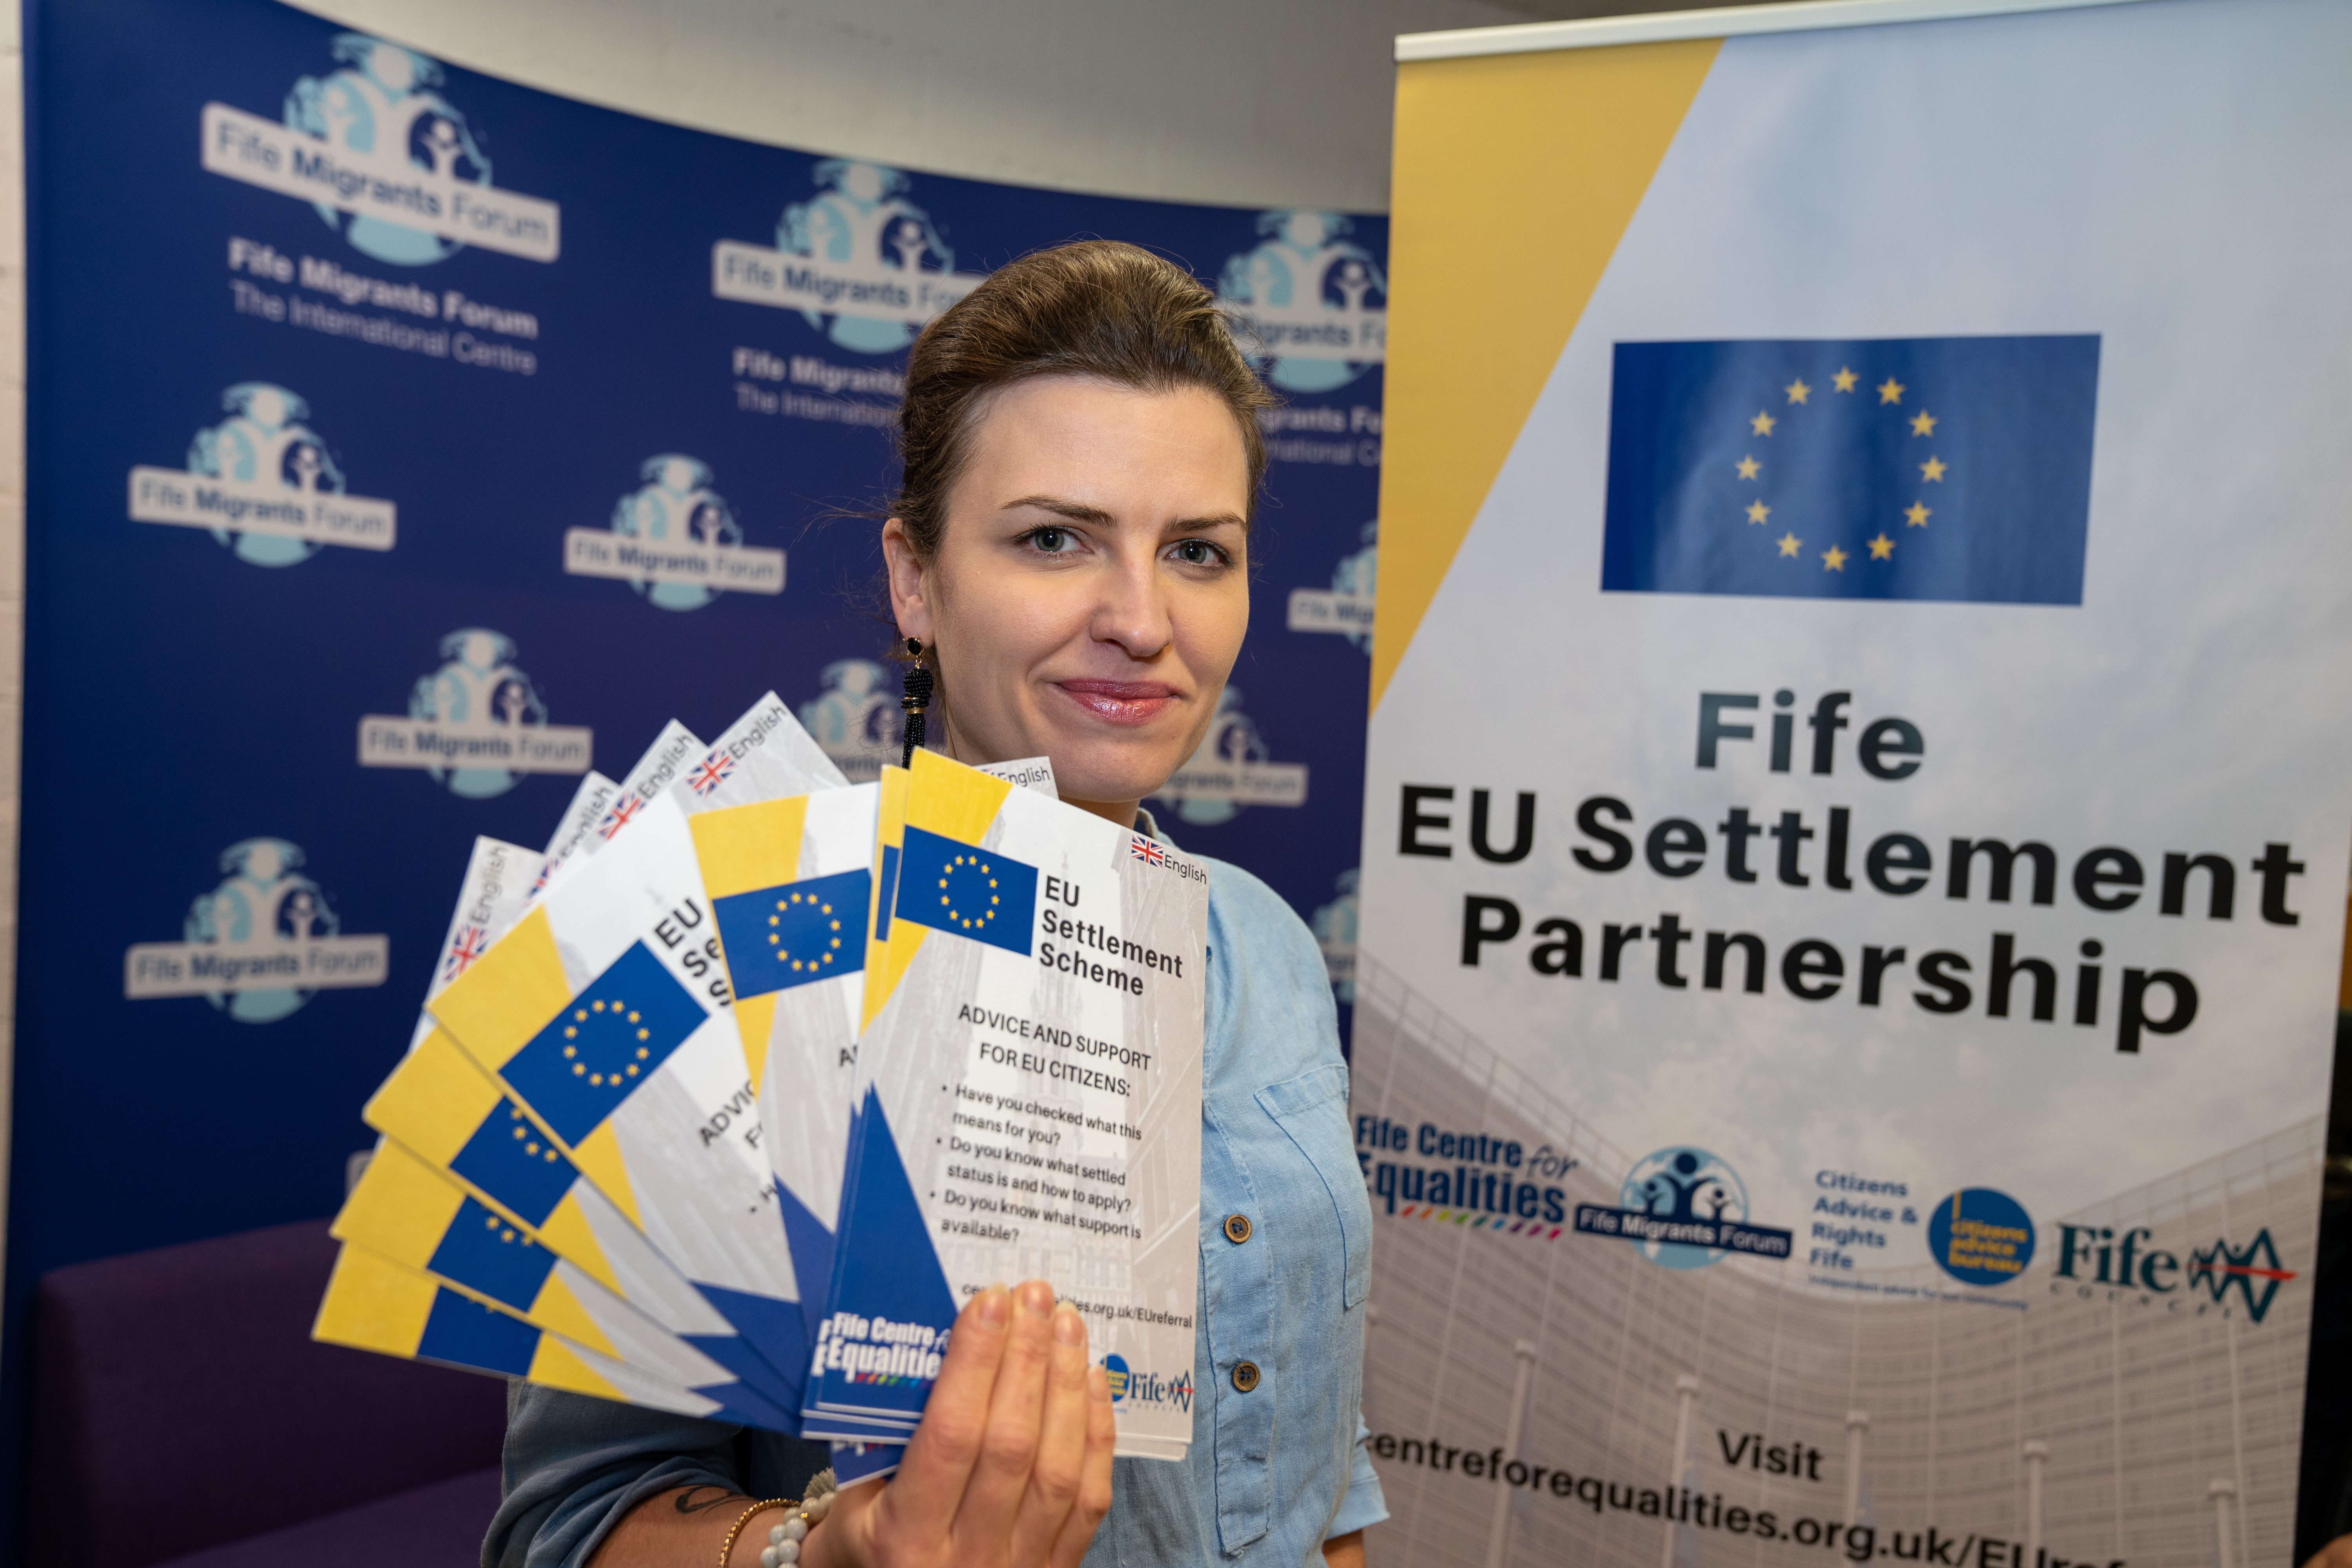 Manager Justyna Majewska with some of the literature on offer from the service outlining the advice and help currently available